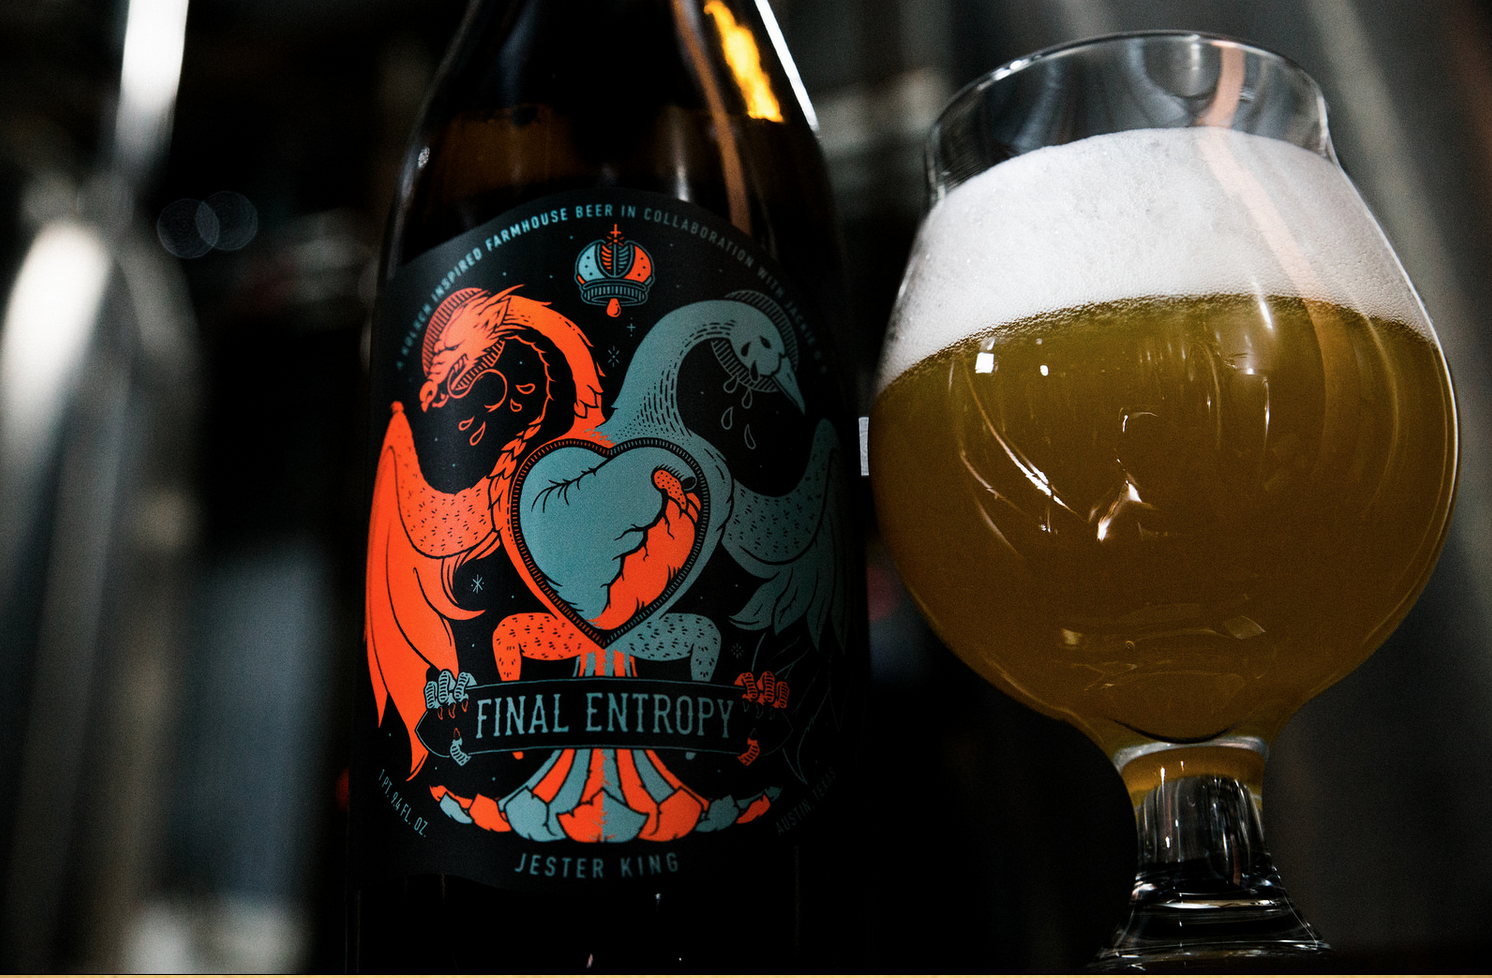 Introducing: Jackie O's / Jester King Final Entropy